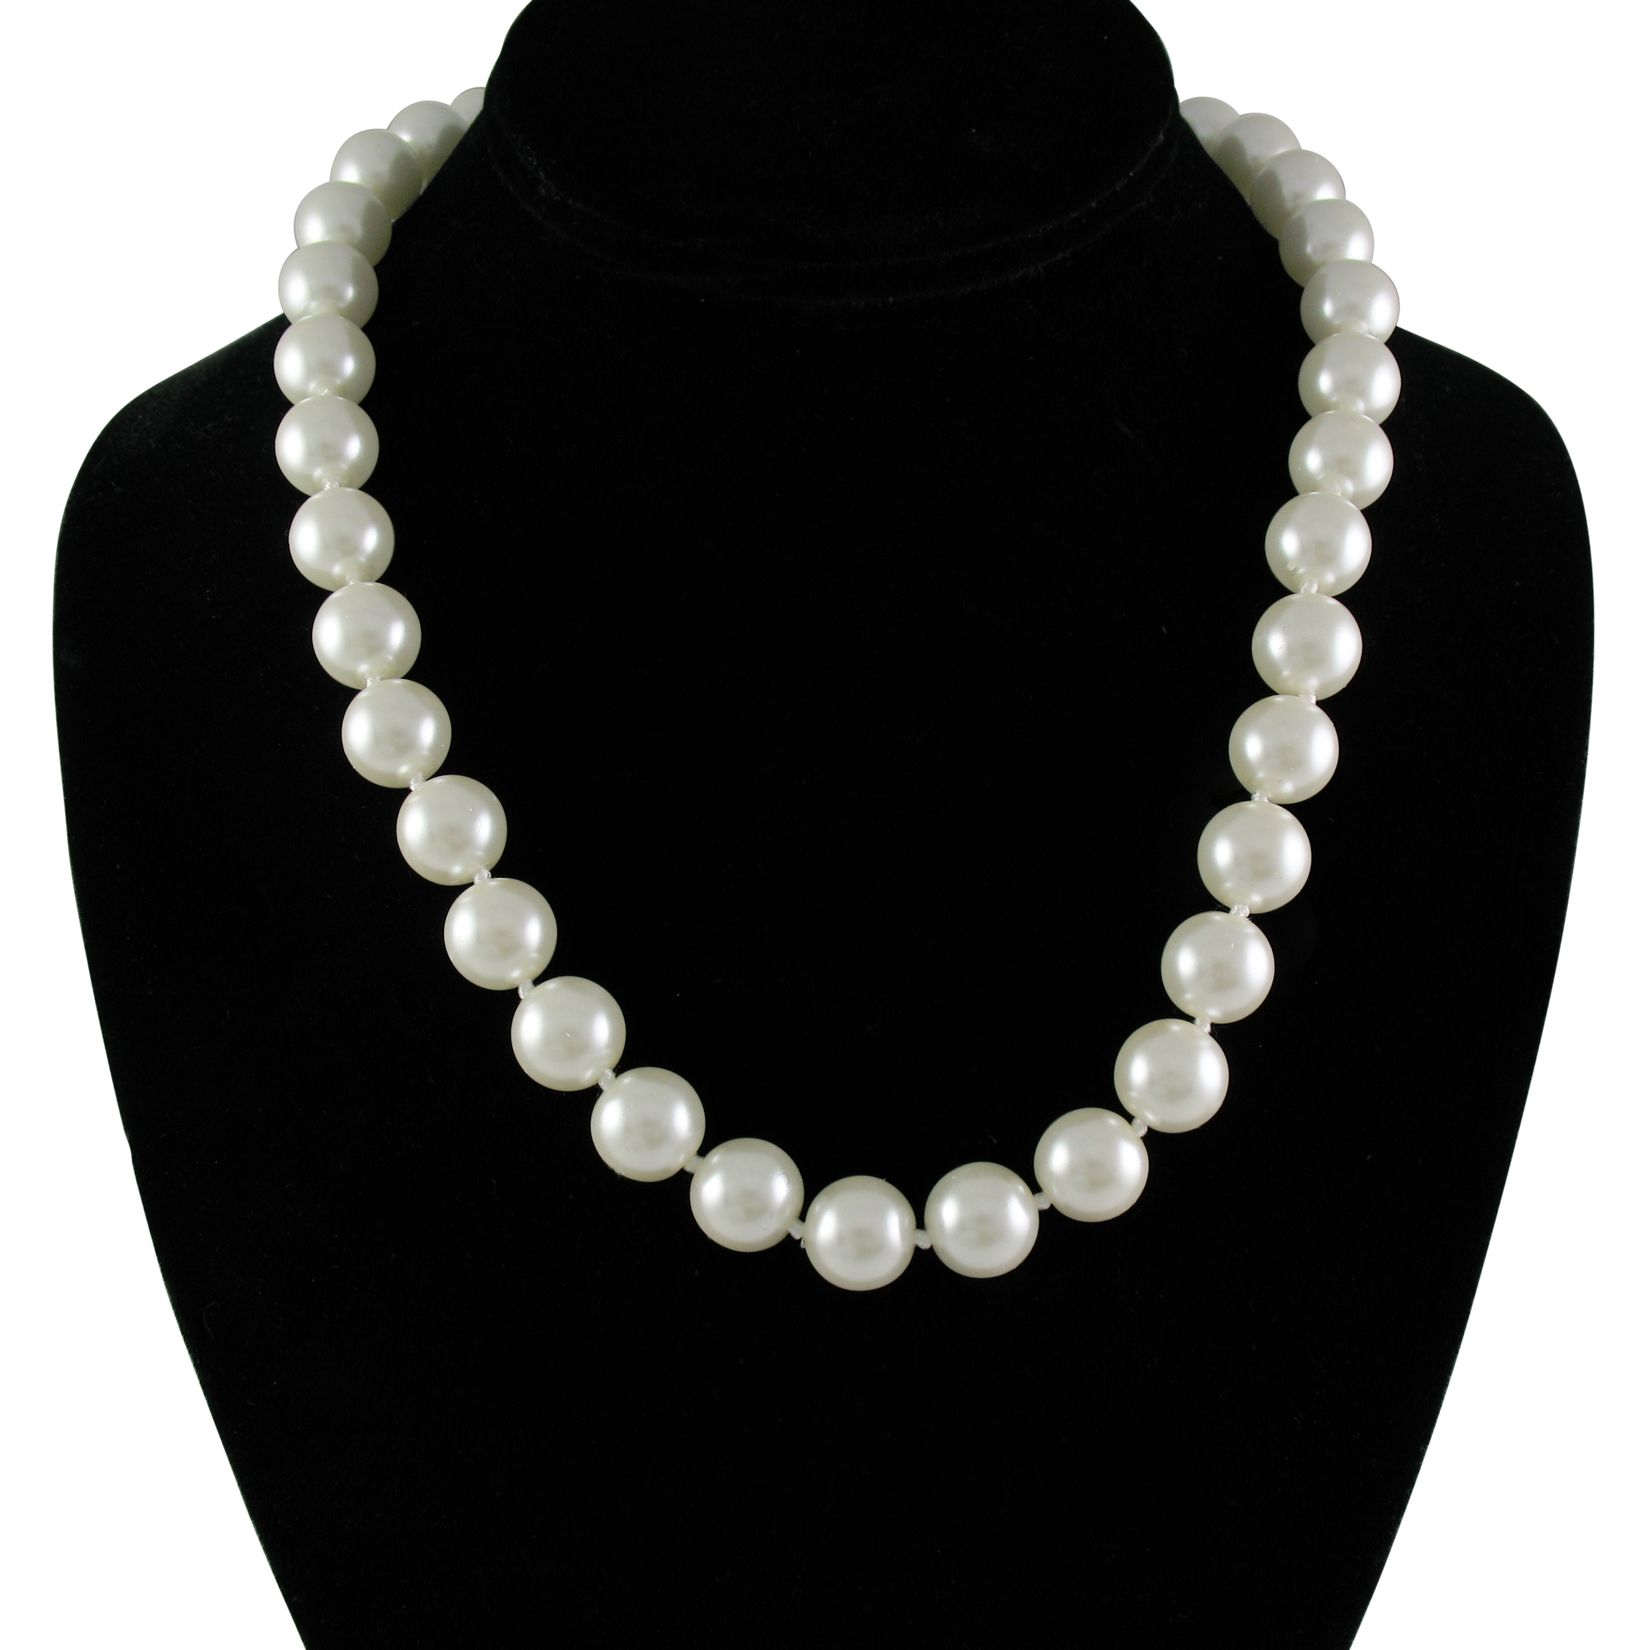 "Cream White 12mm Simulated Faux Pearl Necklace Hand Knotted Strand 18"" Inch Princess Length"